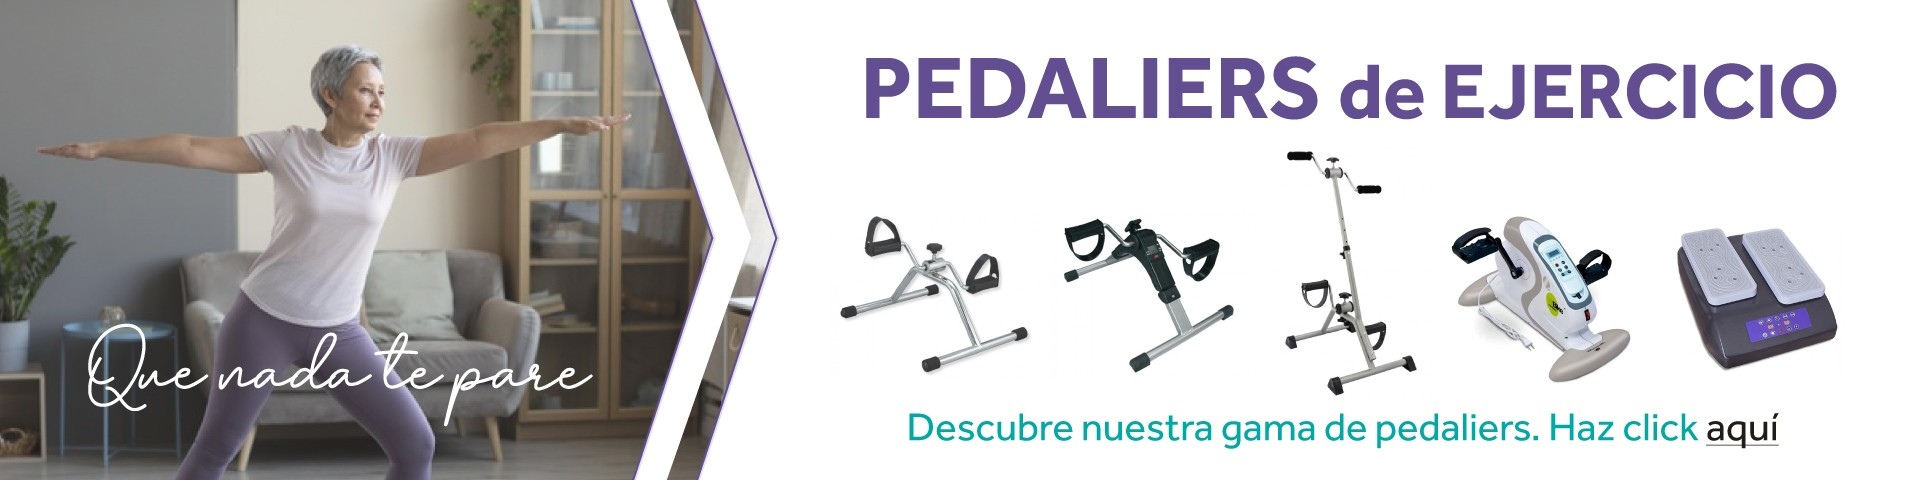 Pedaliers